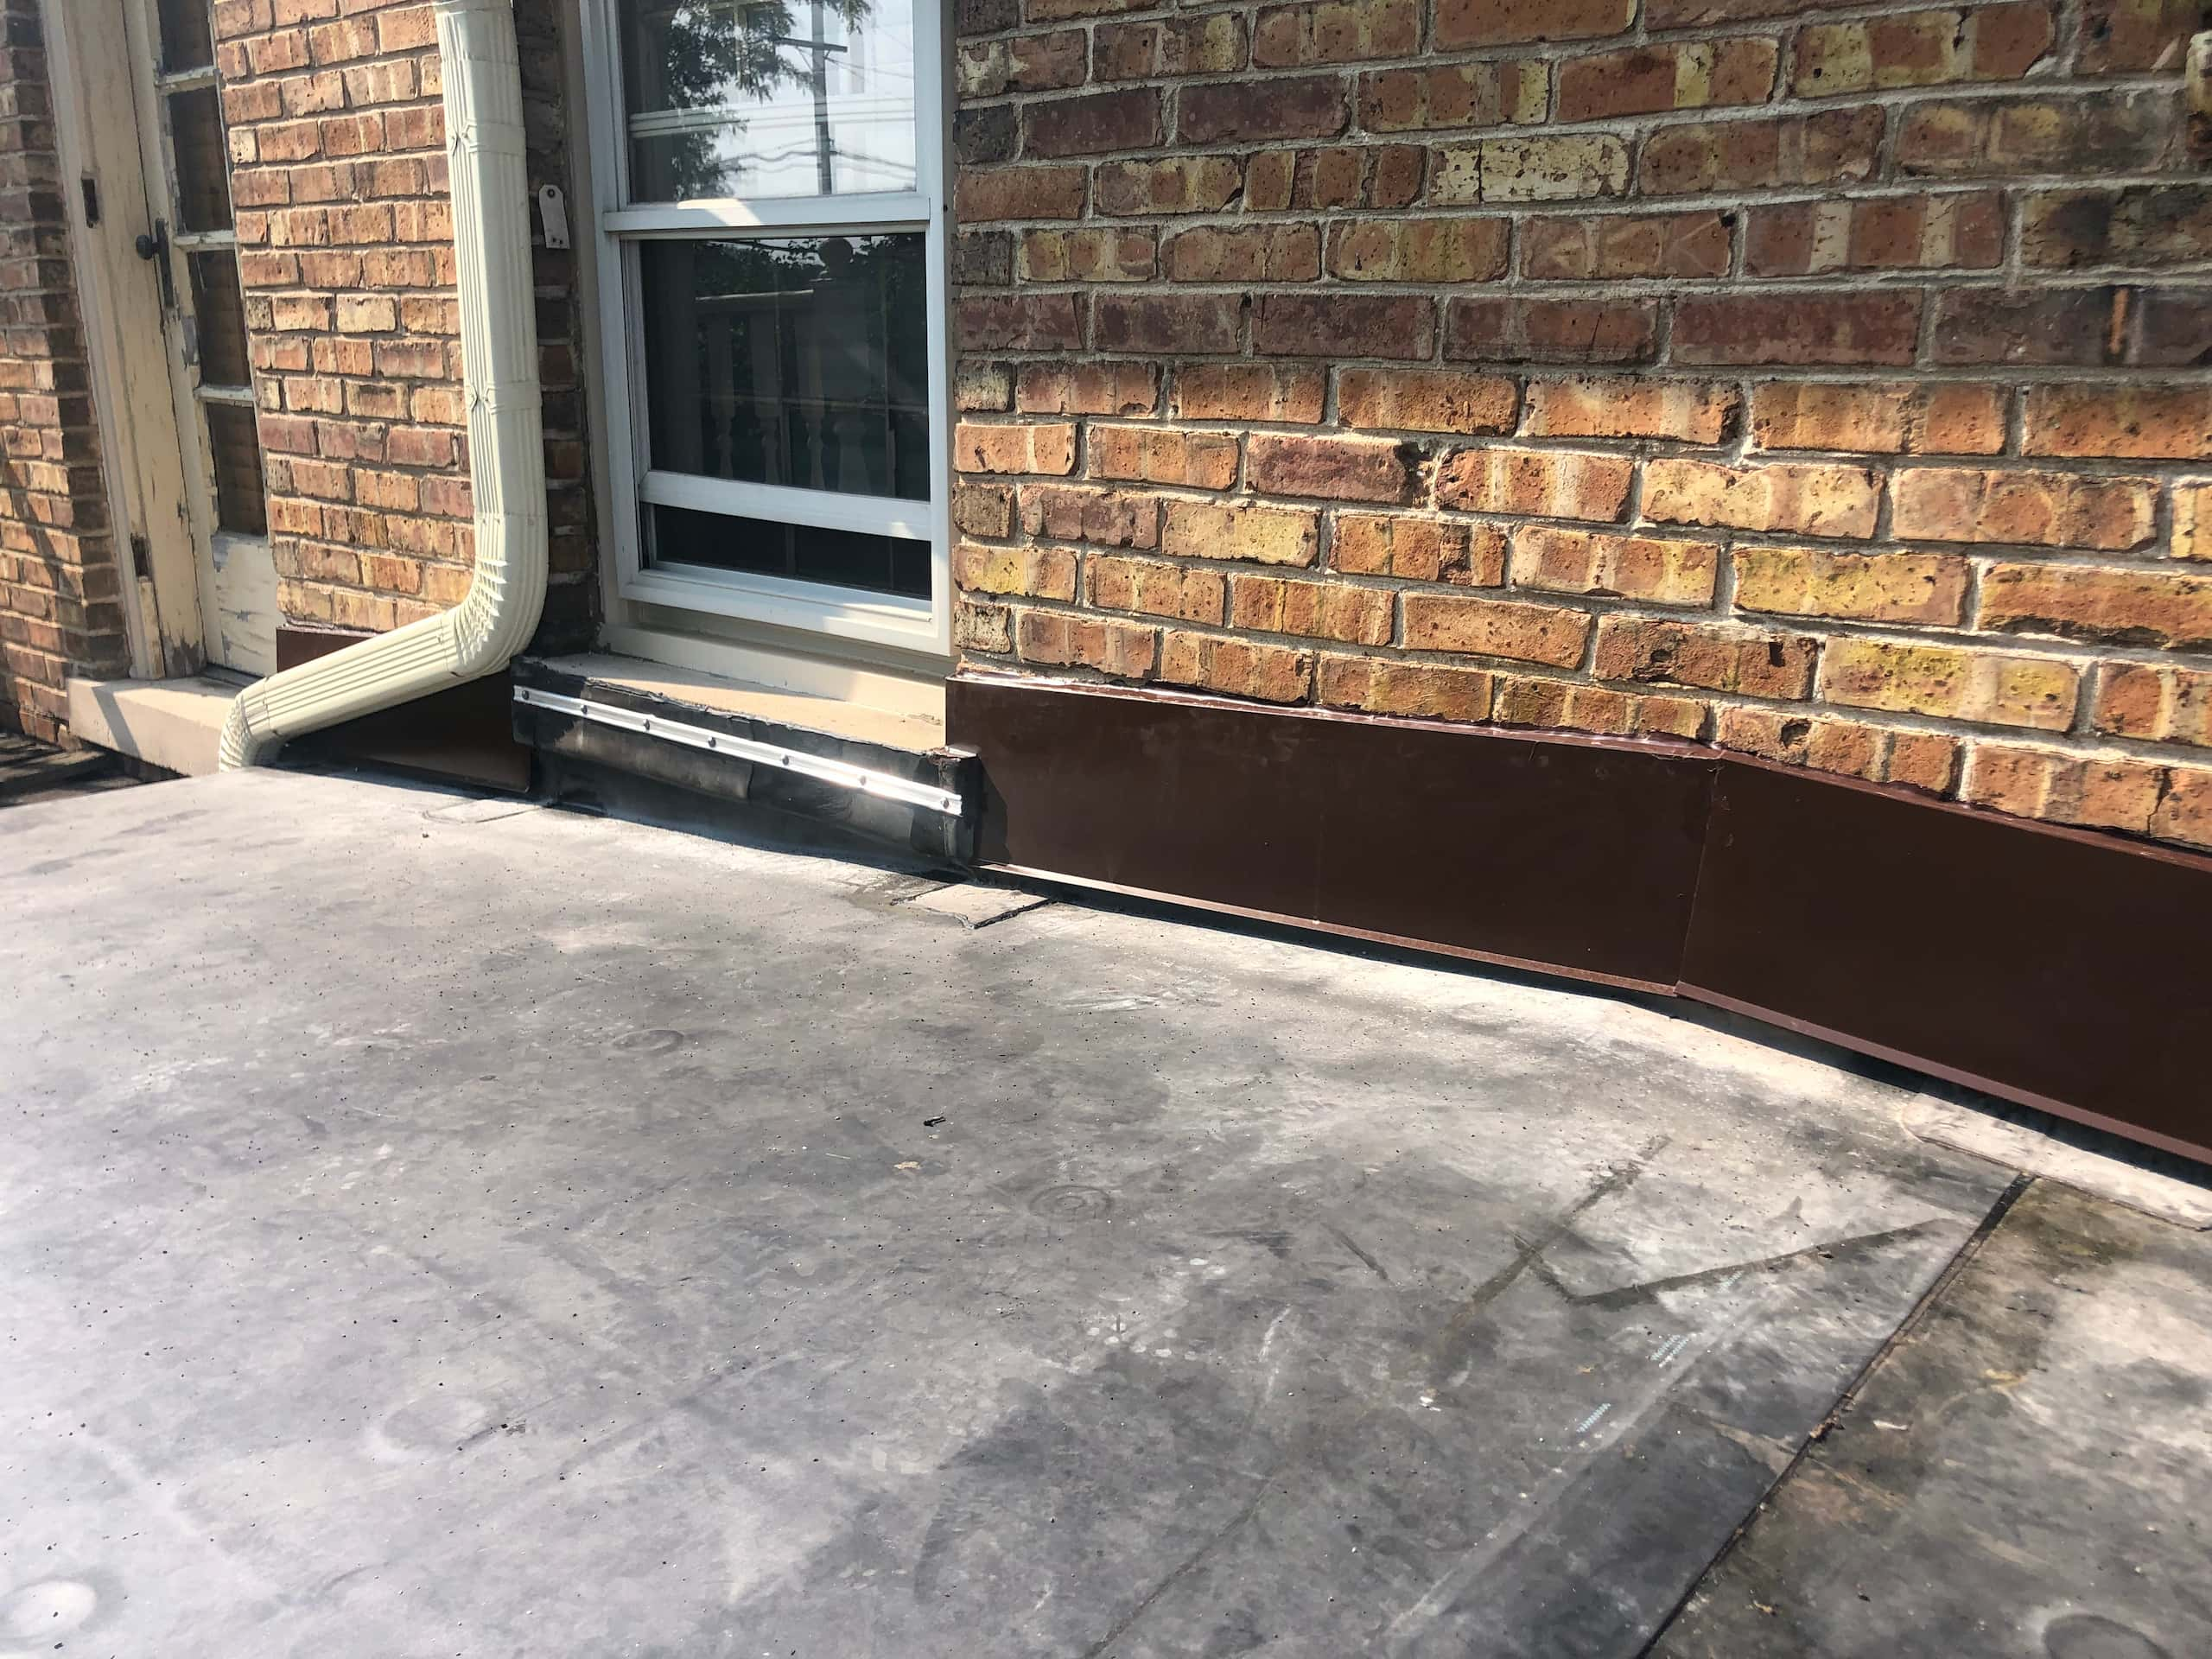 Wisconsin Roofing | Owens Corning Designer Shingles | Aged Copper | Flashings